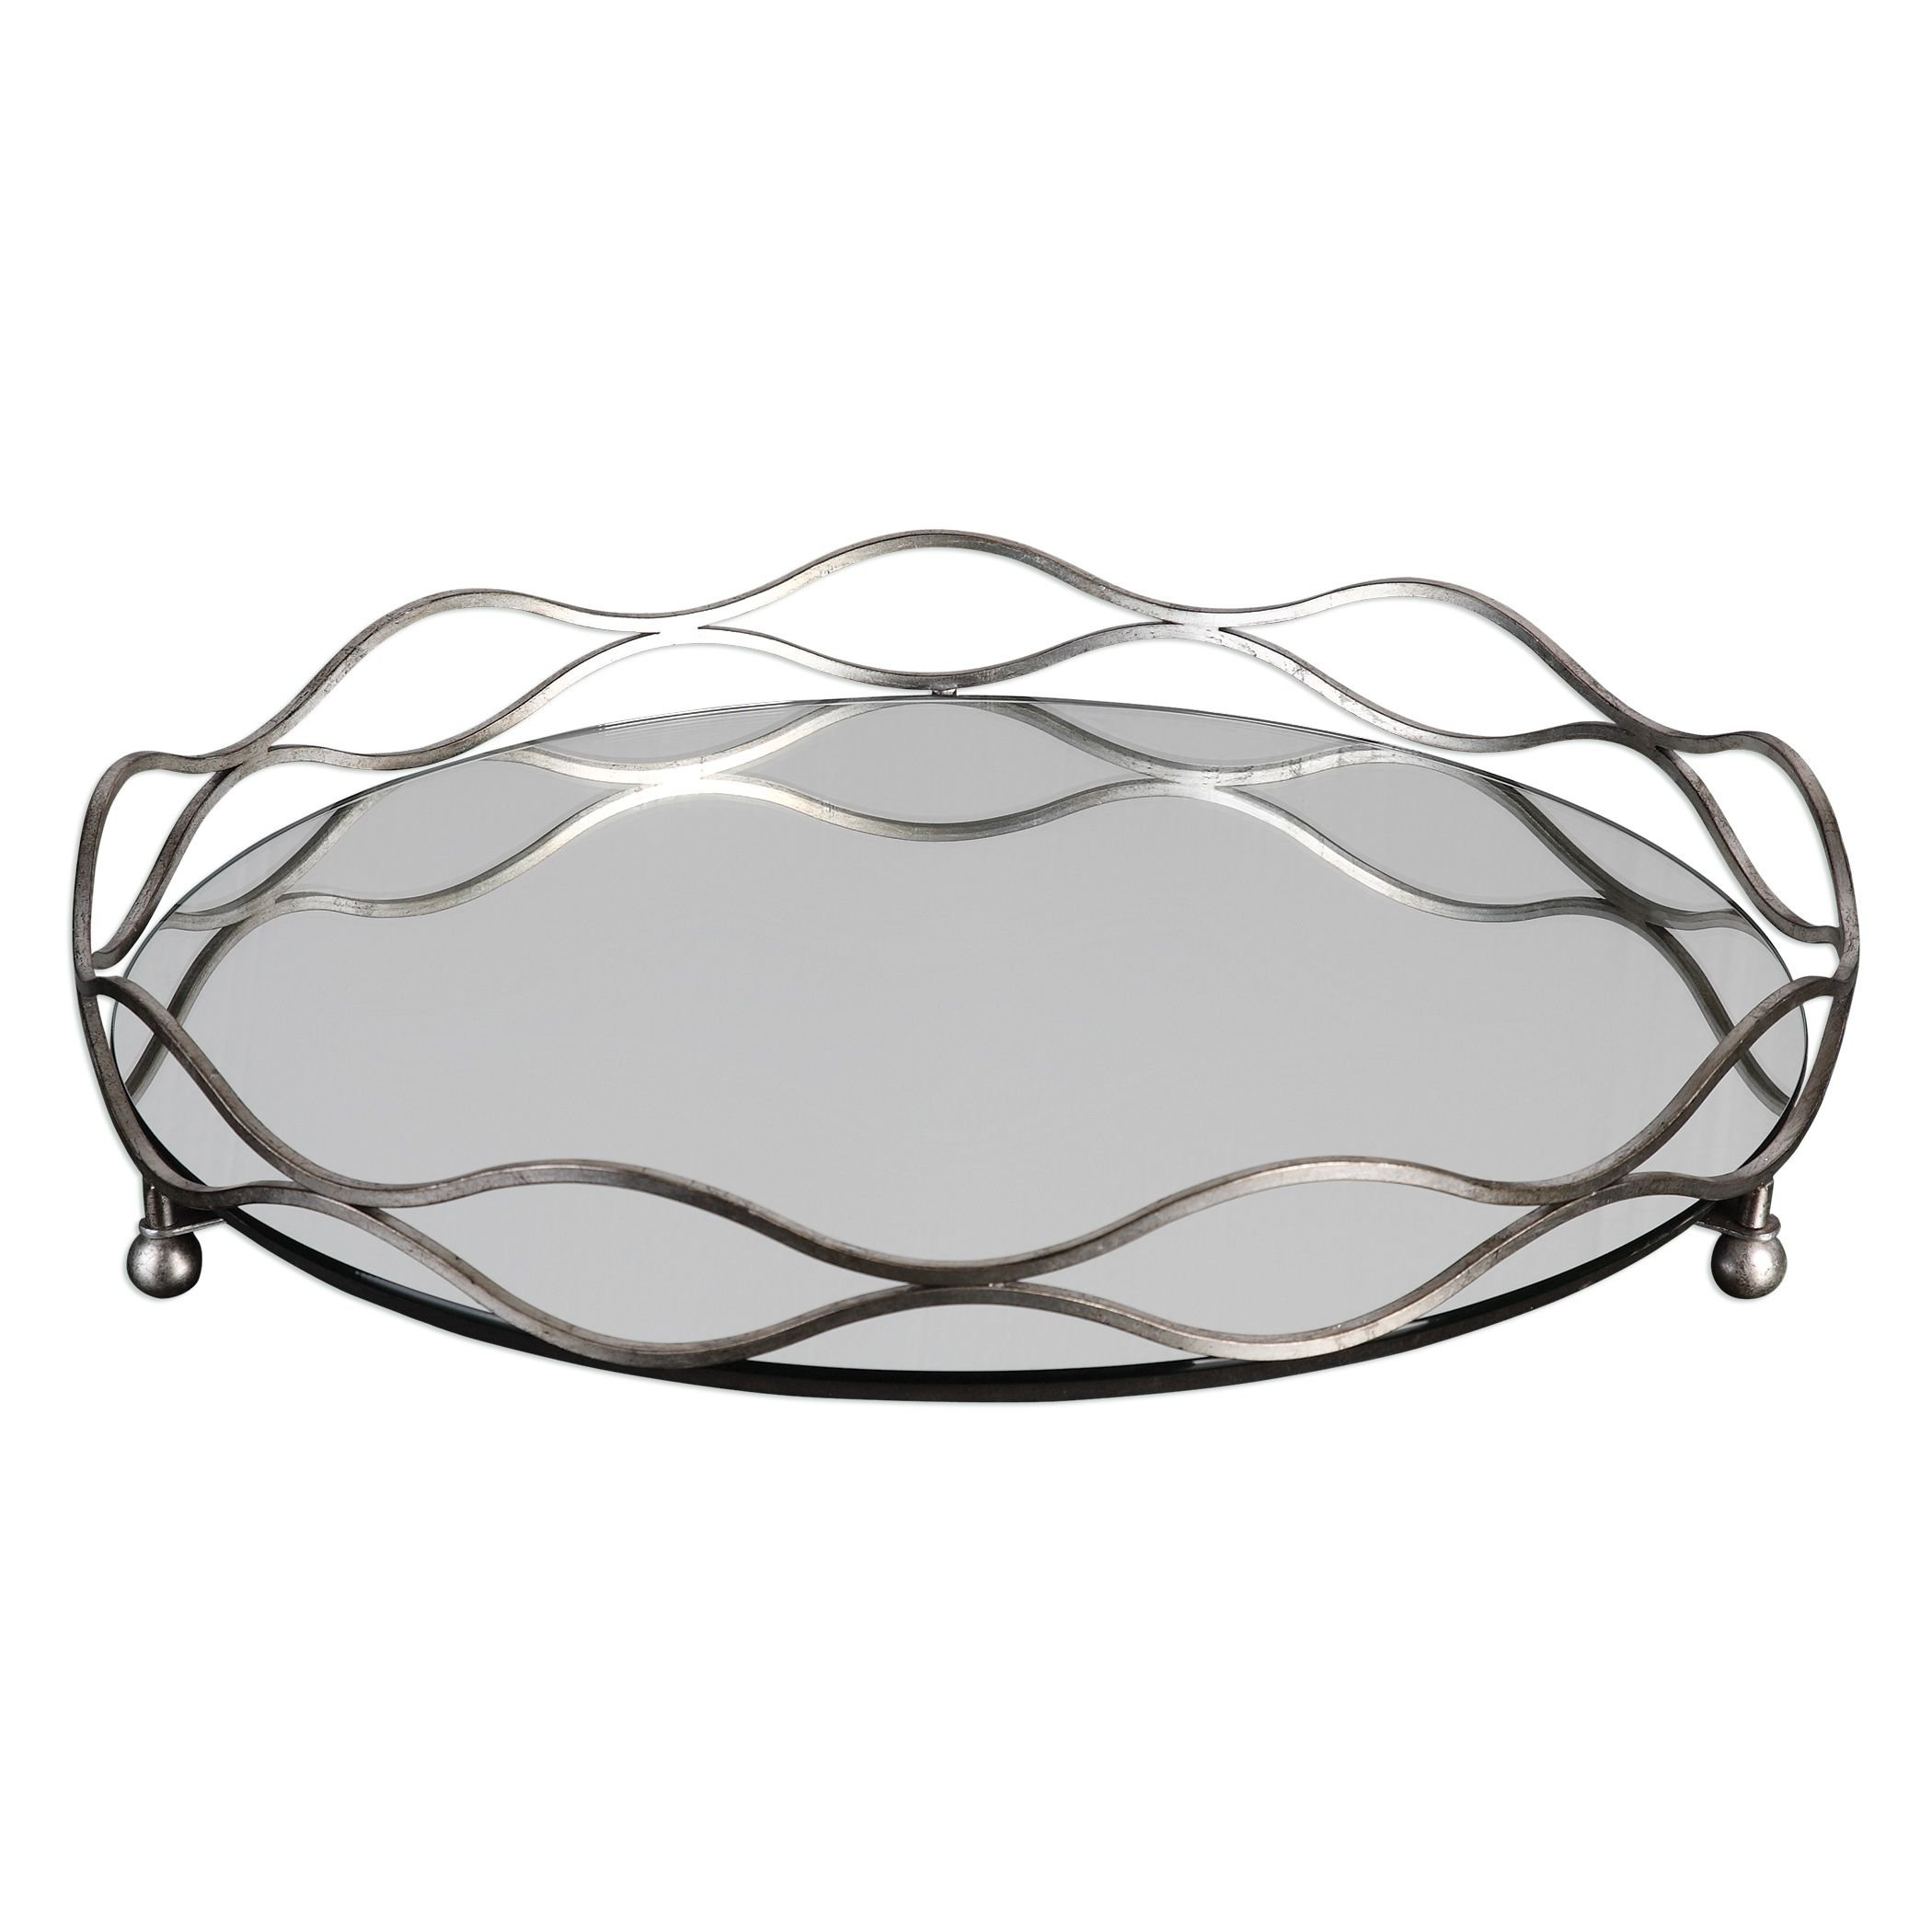 Elegant Round Mirrored Silver Centerpiece Tray   Bar Vanity Waves Open Metal by My Swanky Home (Image #1)